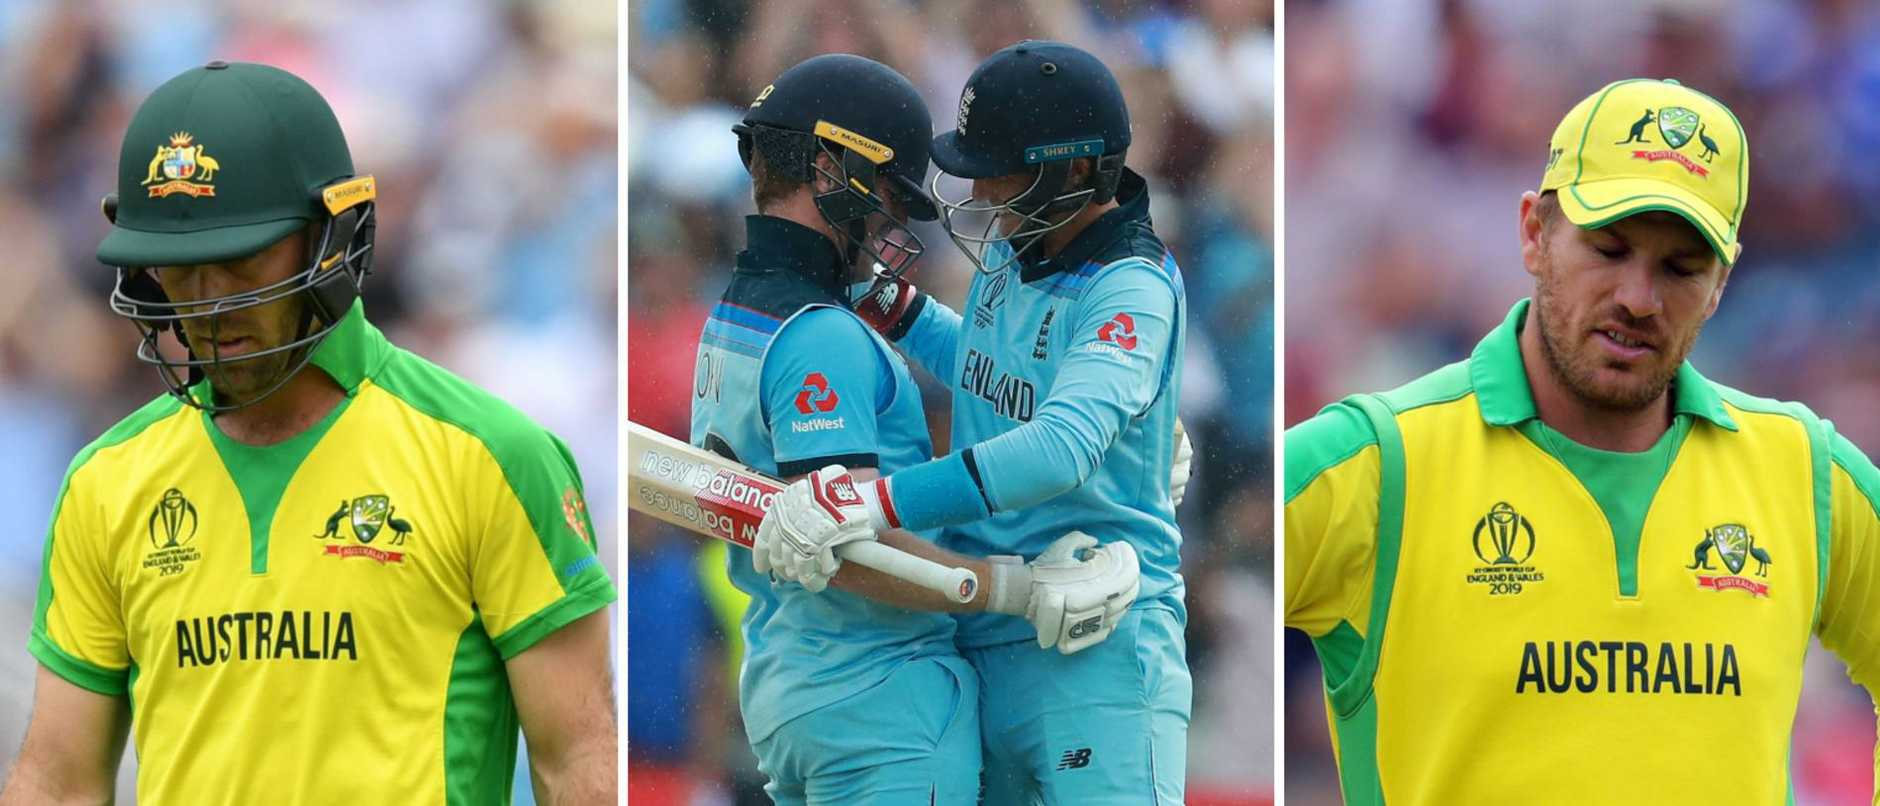 Some burning questions remain after World Cup semi-final defeat.